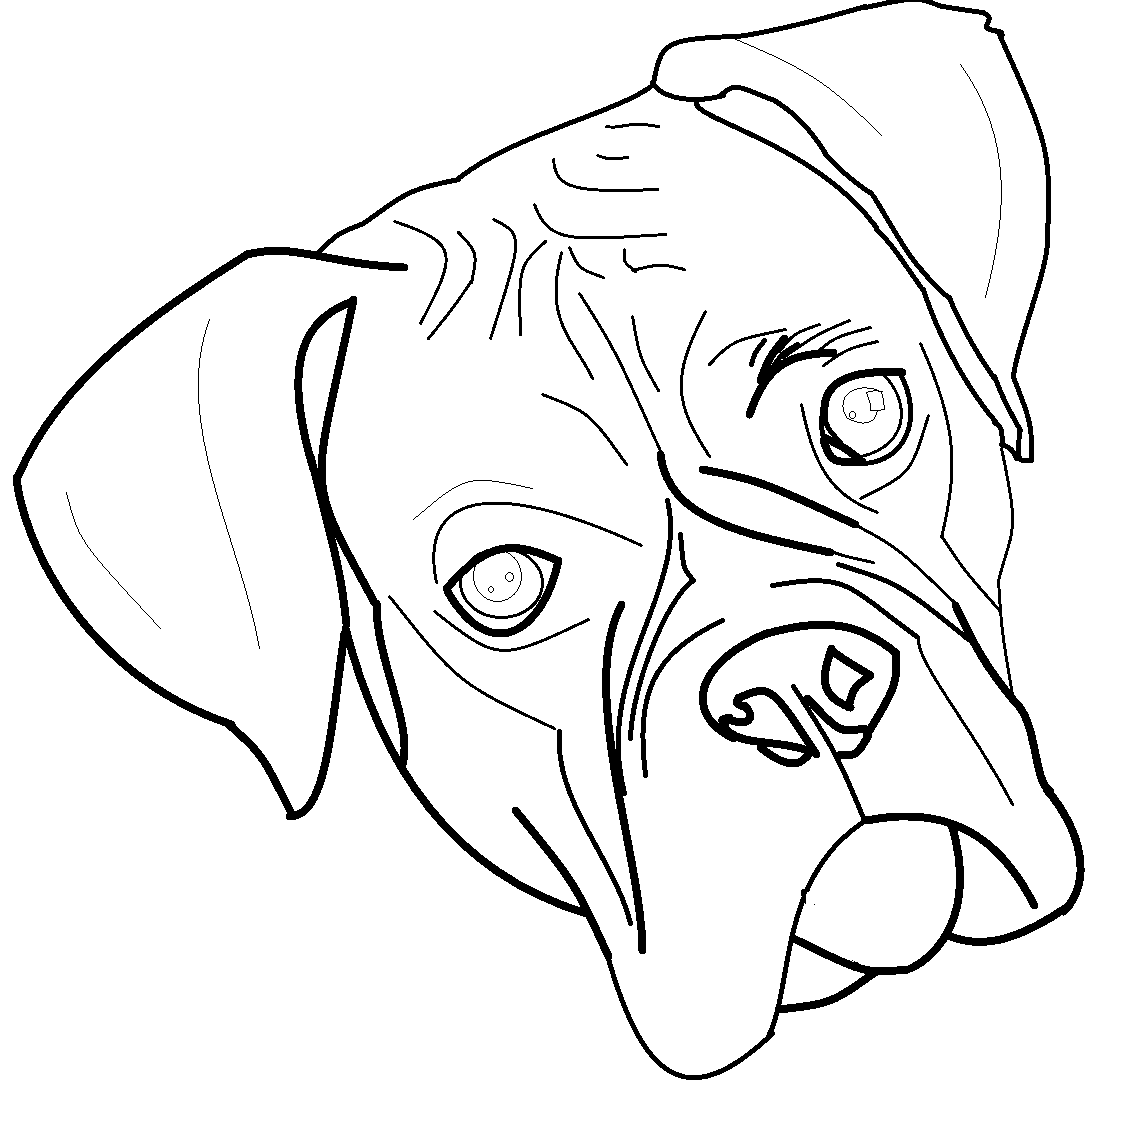 Line Drawing Of A Boxer Dog : Dog head drawing at getdrawings free for personal